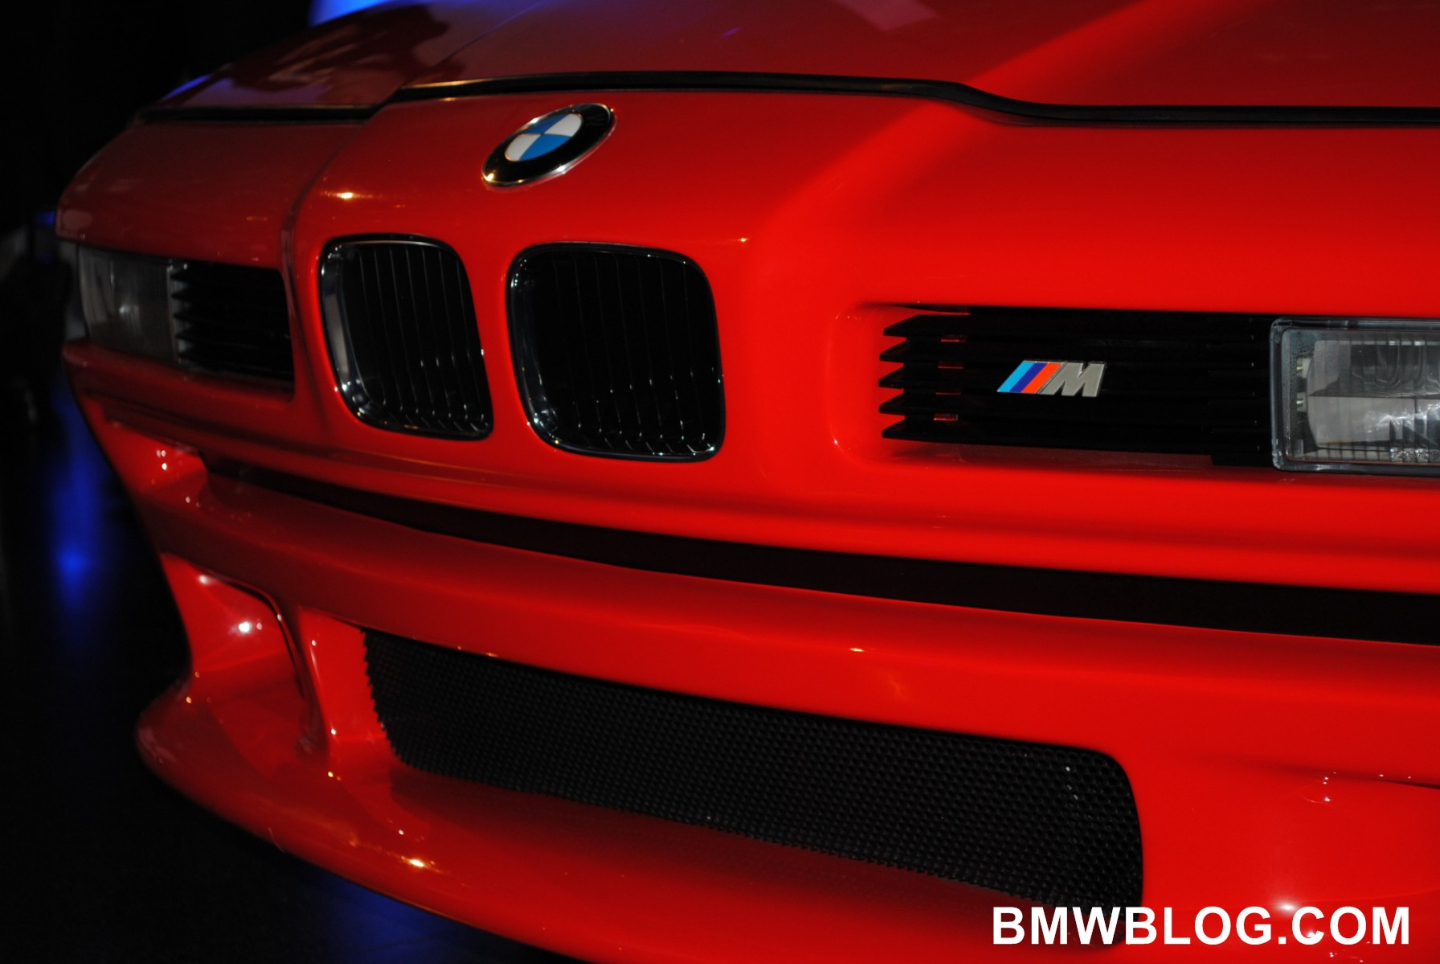 BMWBLOG Exclusive: Unrivaled and Unveiled   BMW M8 Prototype